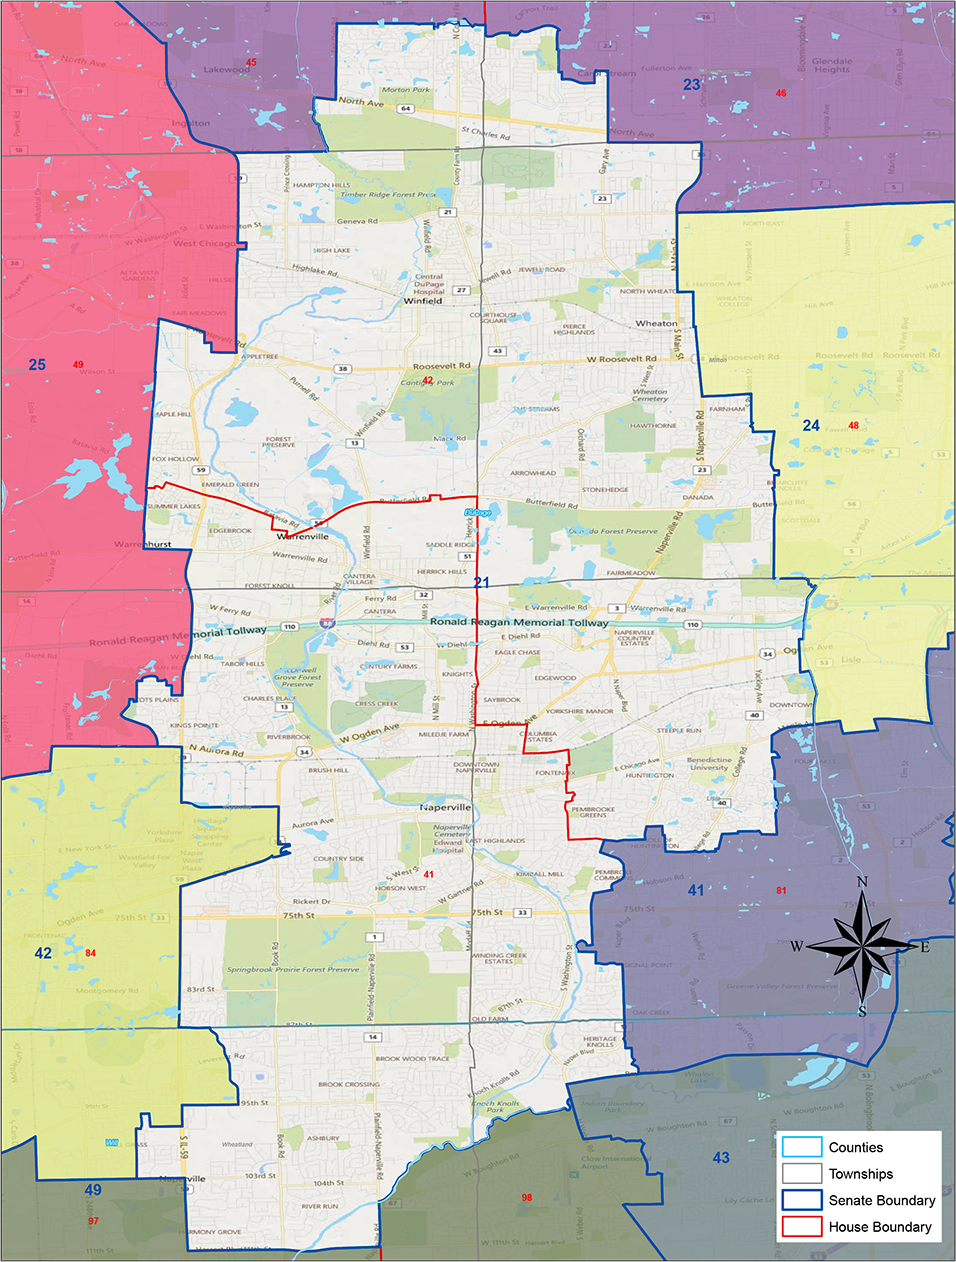 District Info on il congressional map, il state rep map, il city map, il county map, il state senators map, illinois senate district 24 map, il state legislative map, wi senate map, il school district map, il township map, il state house map, il senate district map, il state representative map, il cities map,